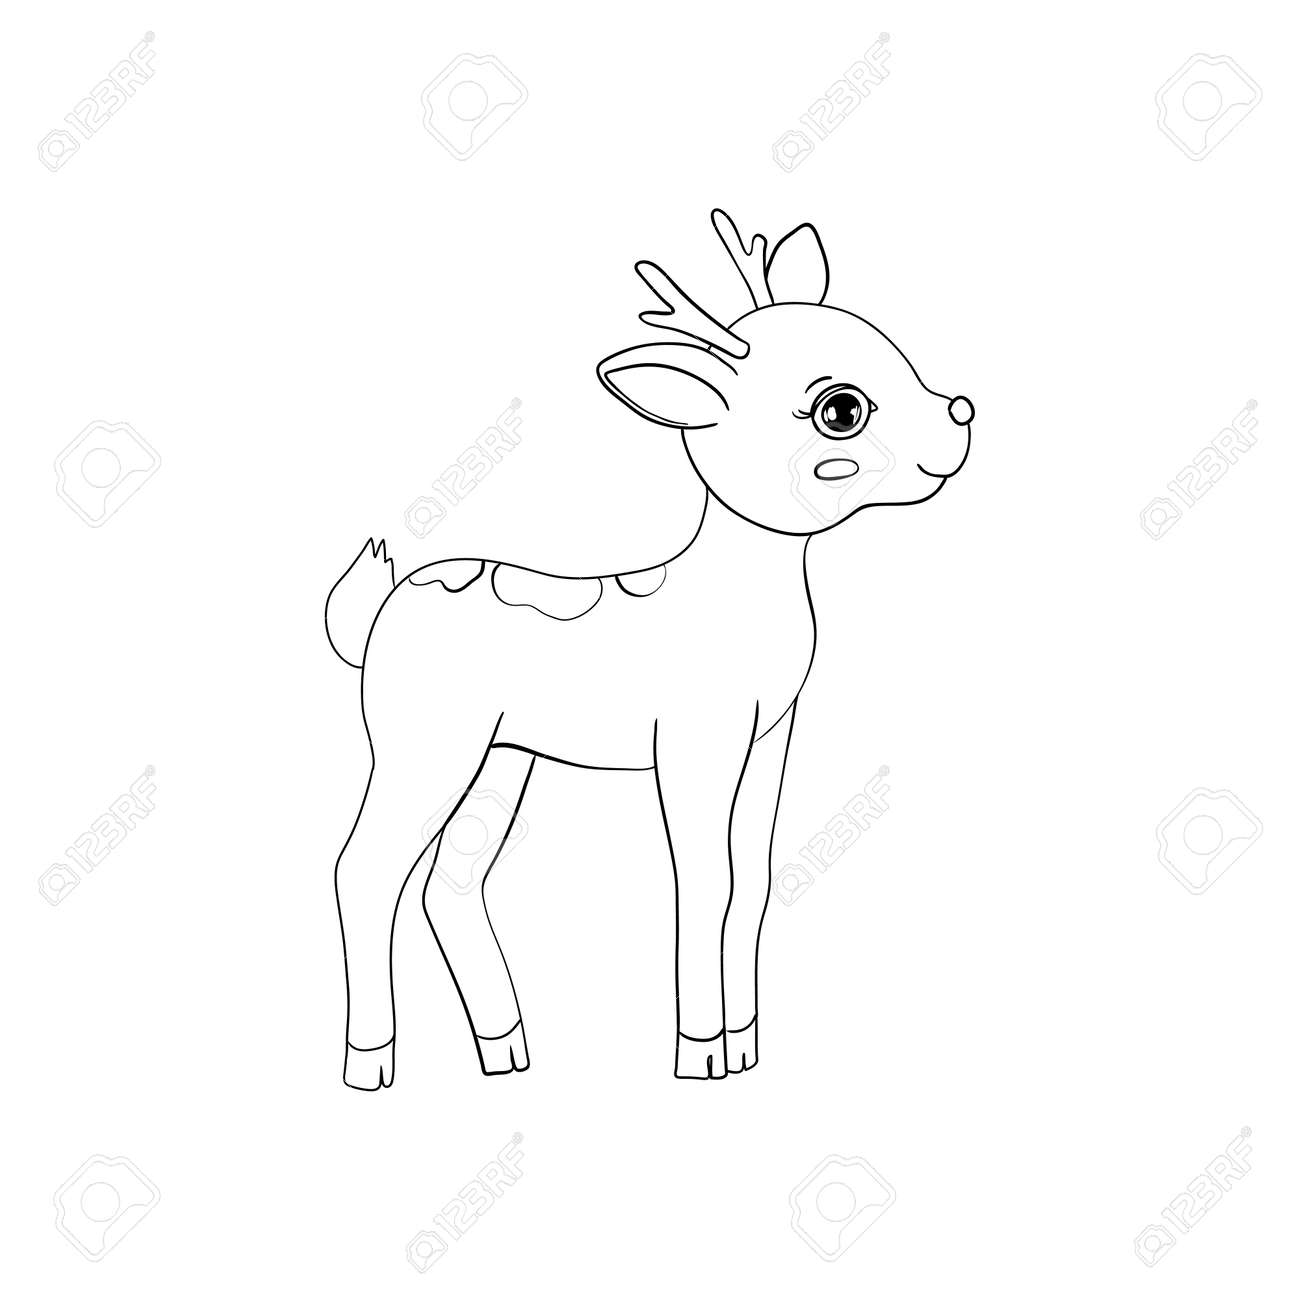 Hand-drawn Sketch of an Isolated Little Deer Black and White Cartoon Vector Illustration for Coloring Book-Drawn Vector - 168291310